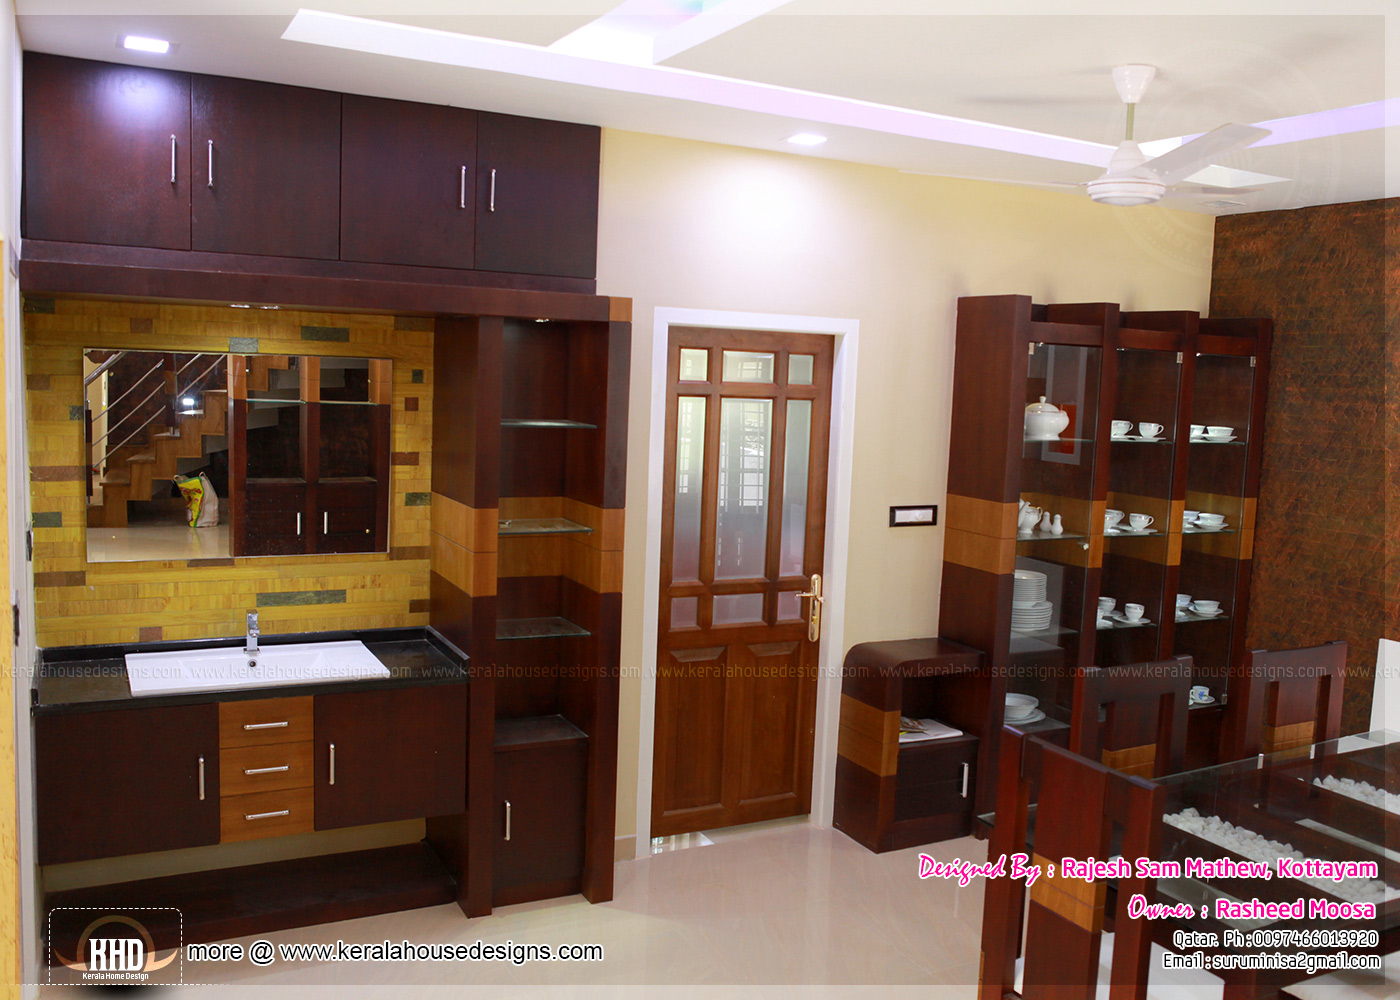 Kerala interior design with photos indian house plans for Kerala model interior designs